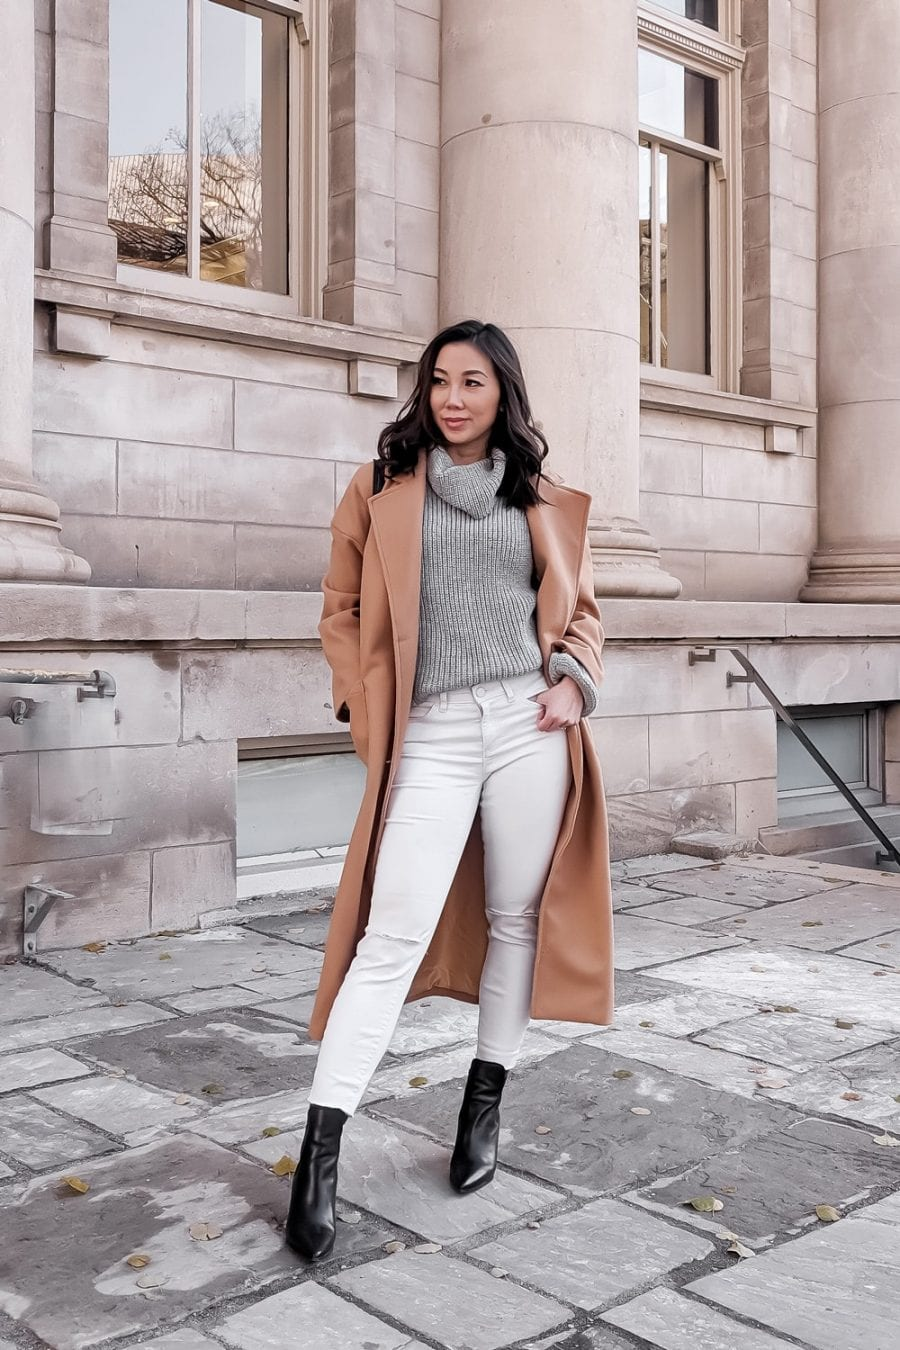 Winter outfit ideas - long camel coat, sweater and white jeans